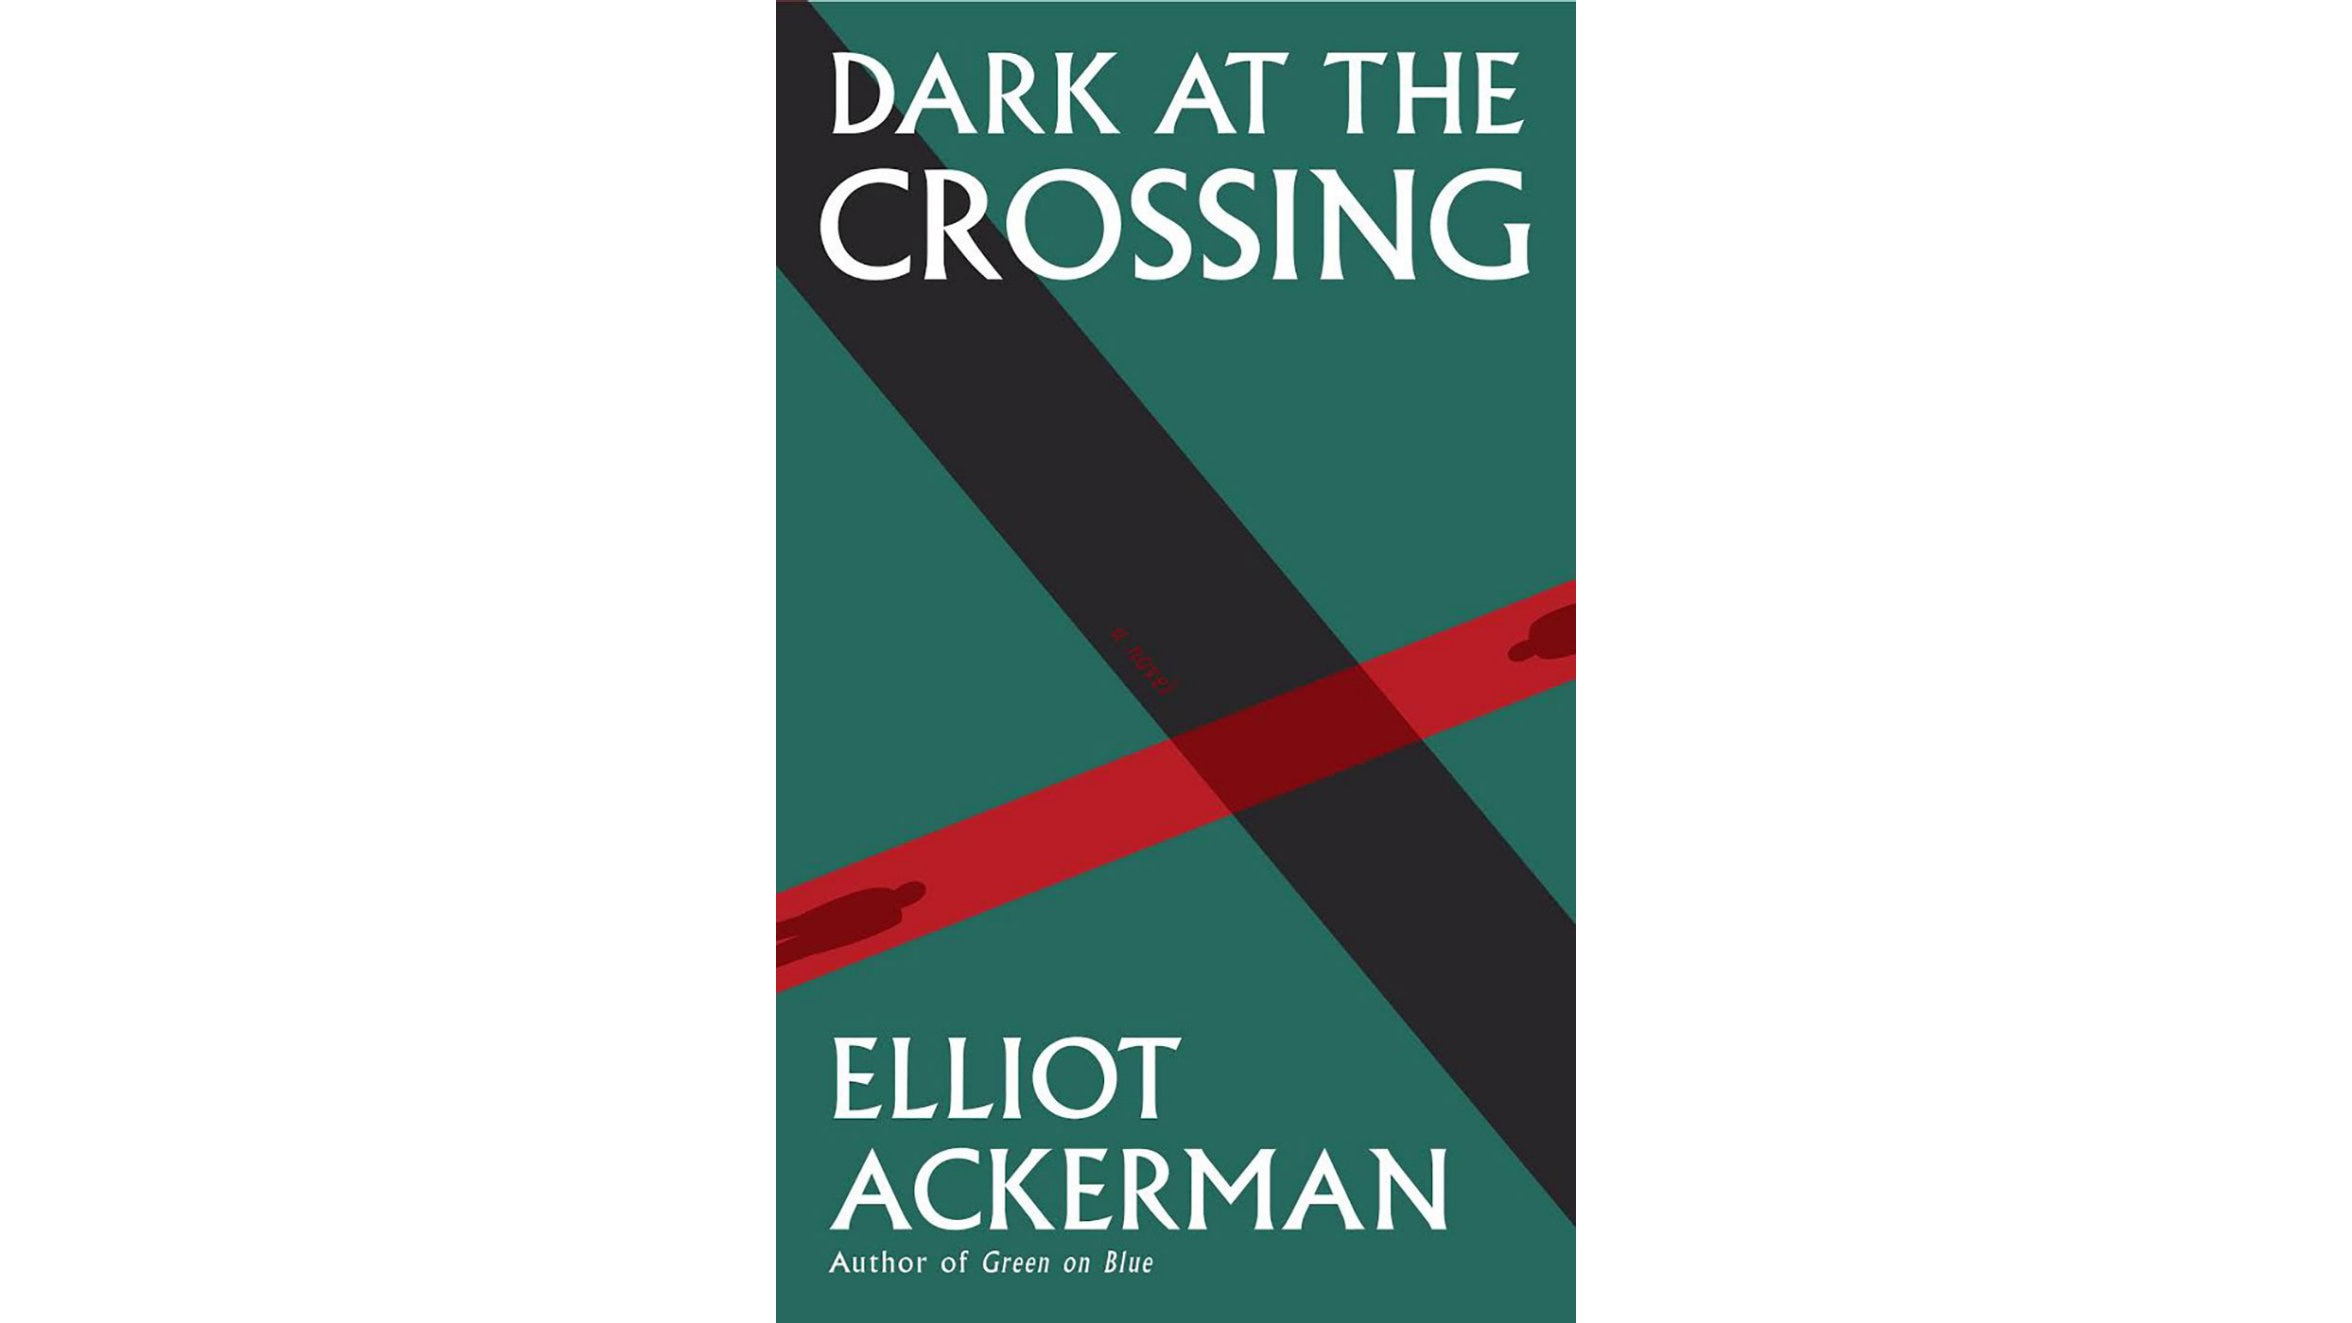 Spring 2017 book review -- Dark at the Crossing